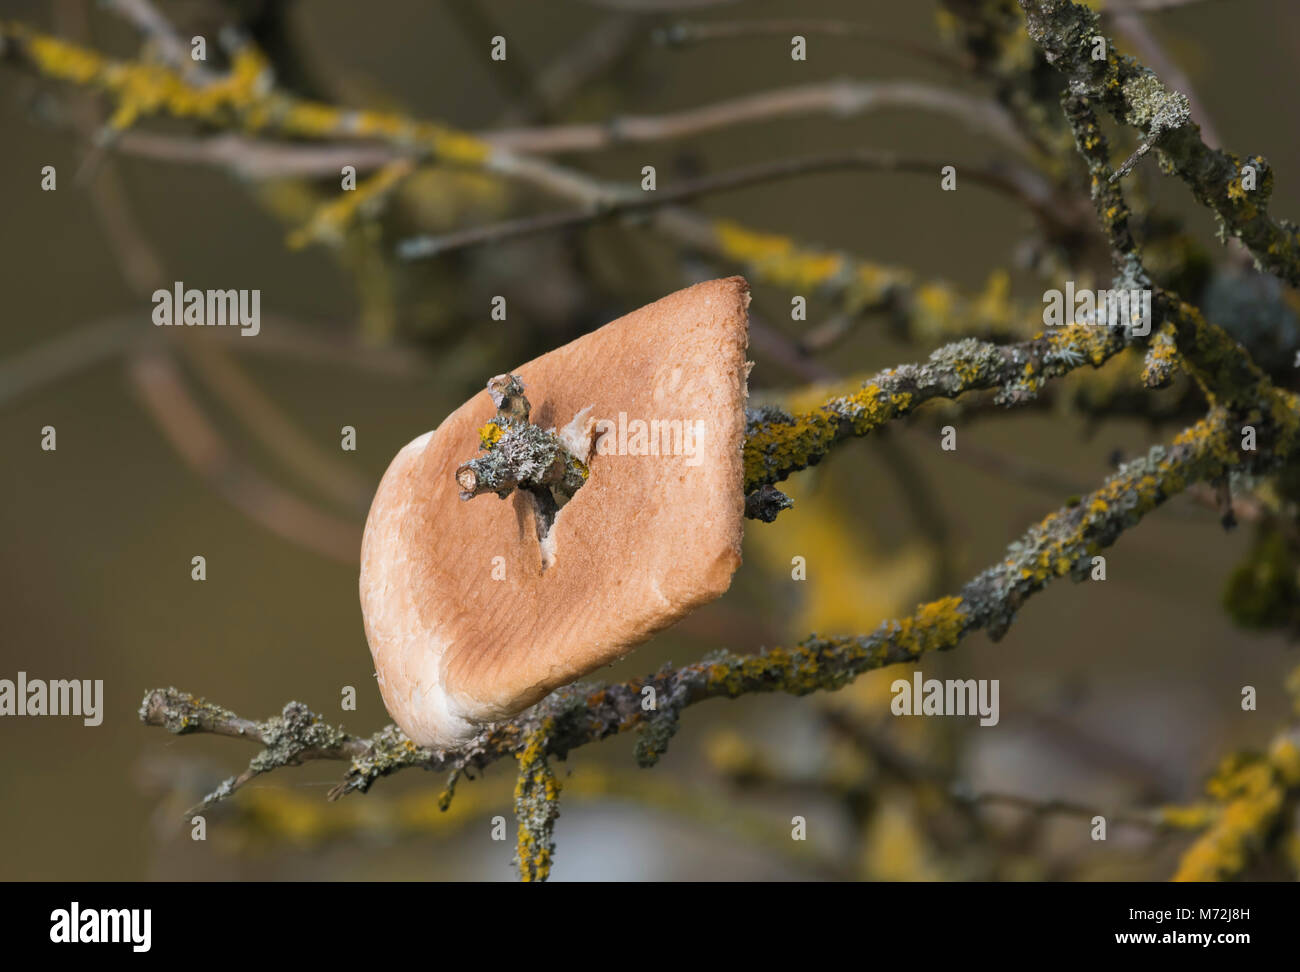 Slice of white bread impaled on a twig of a tree, attracting birds to feed for wildlife photographers. Bird bait, - Stock Image